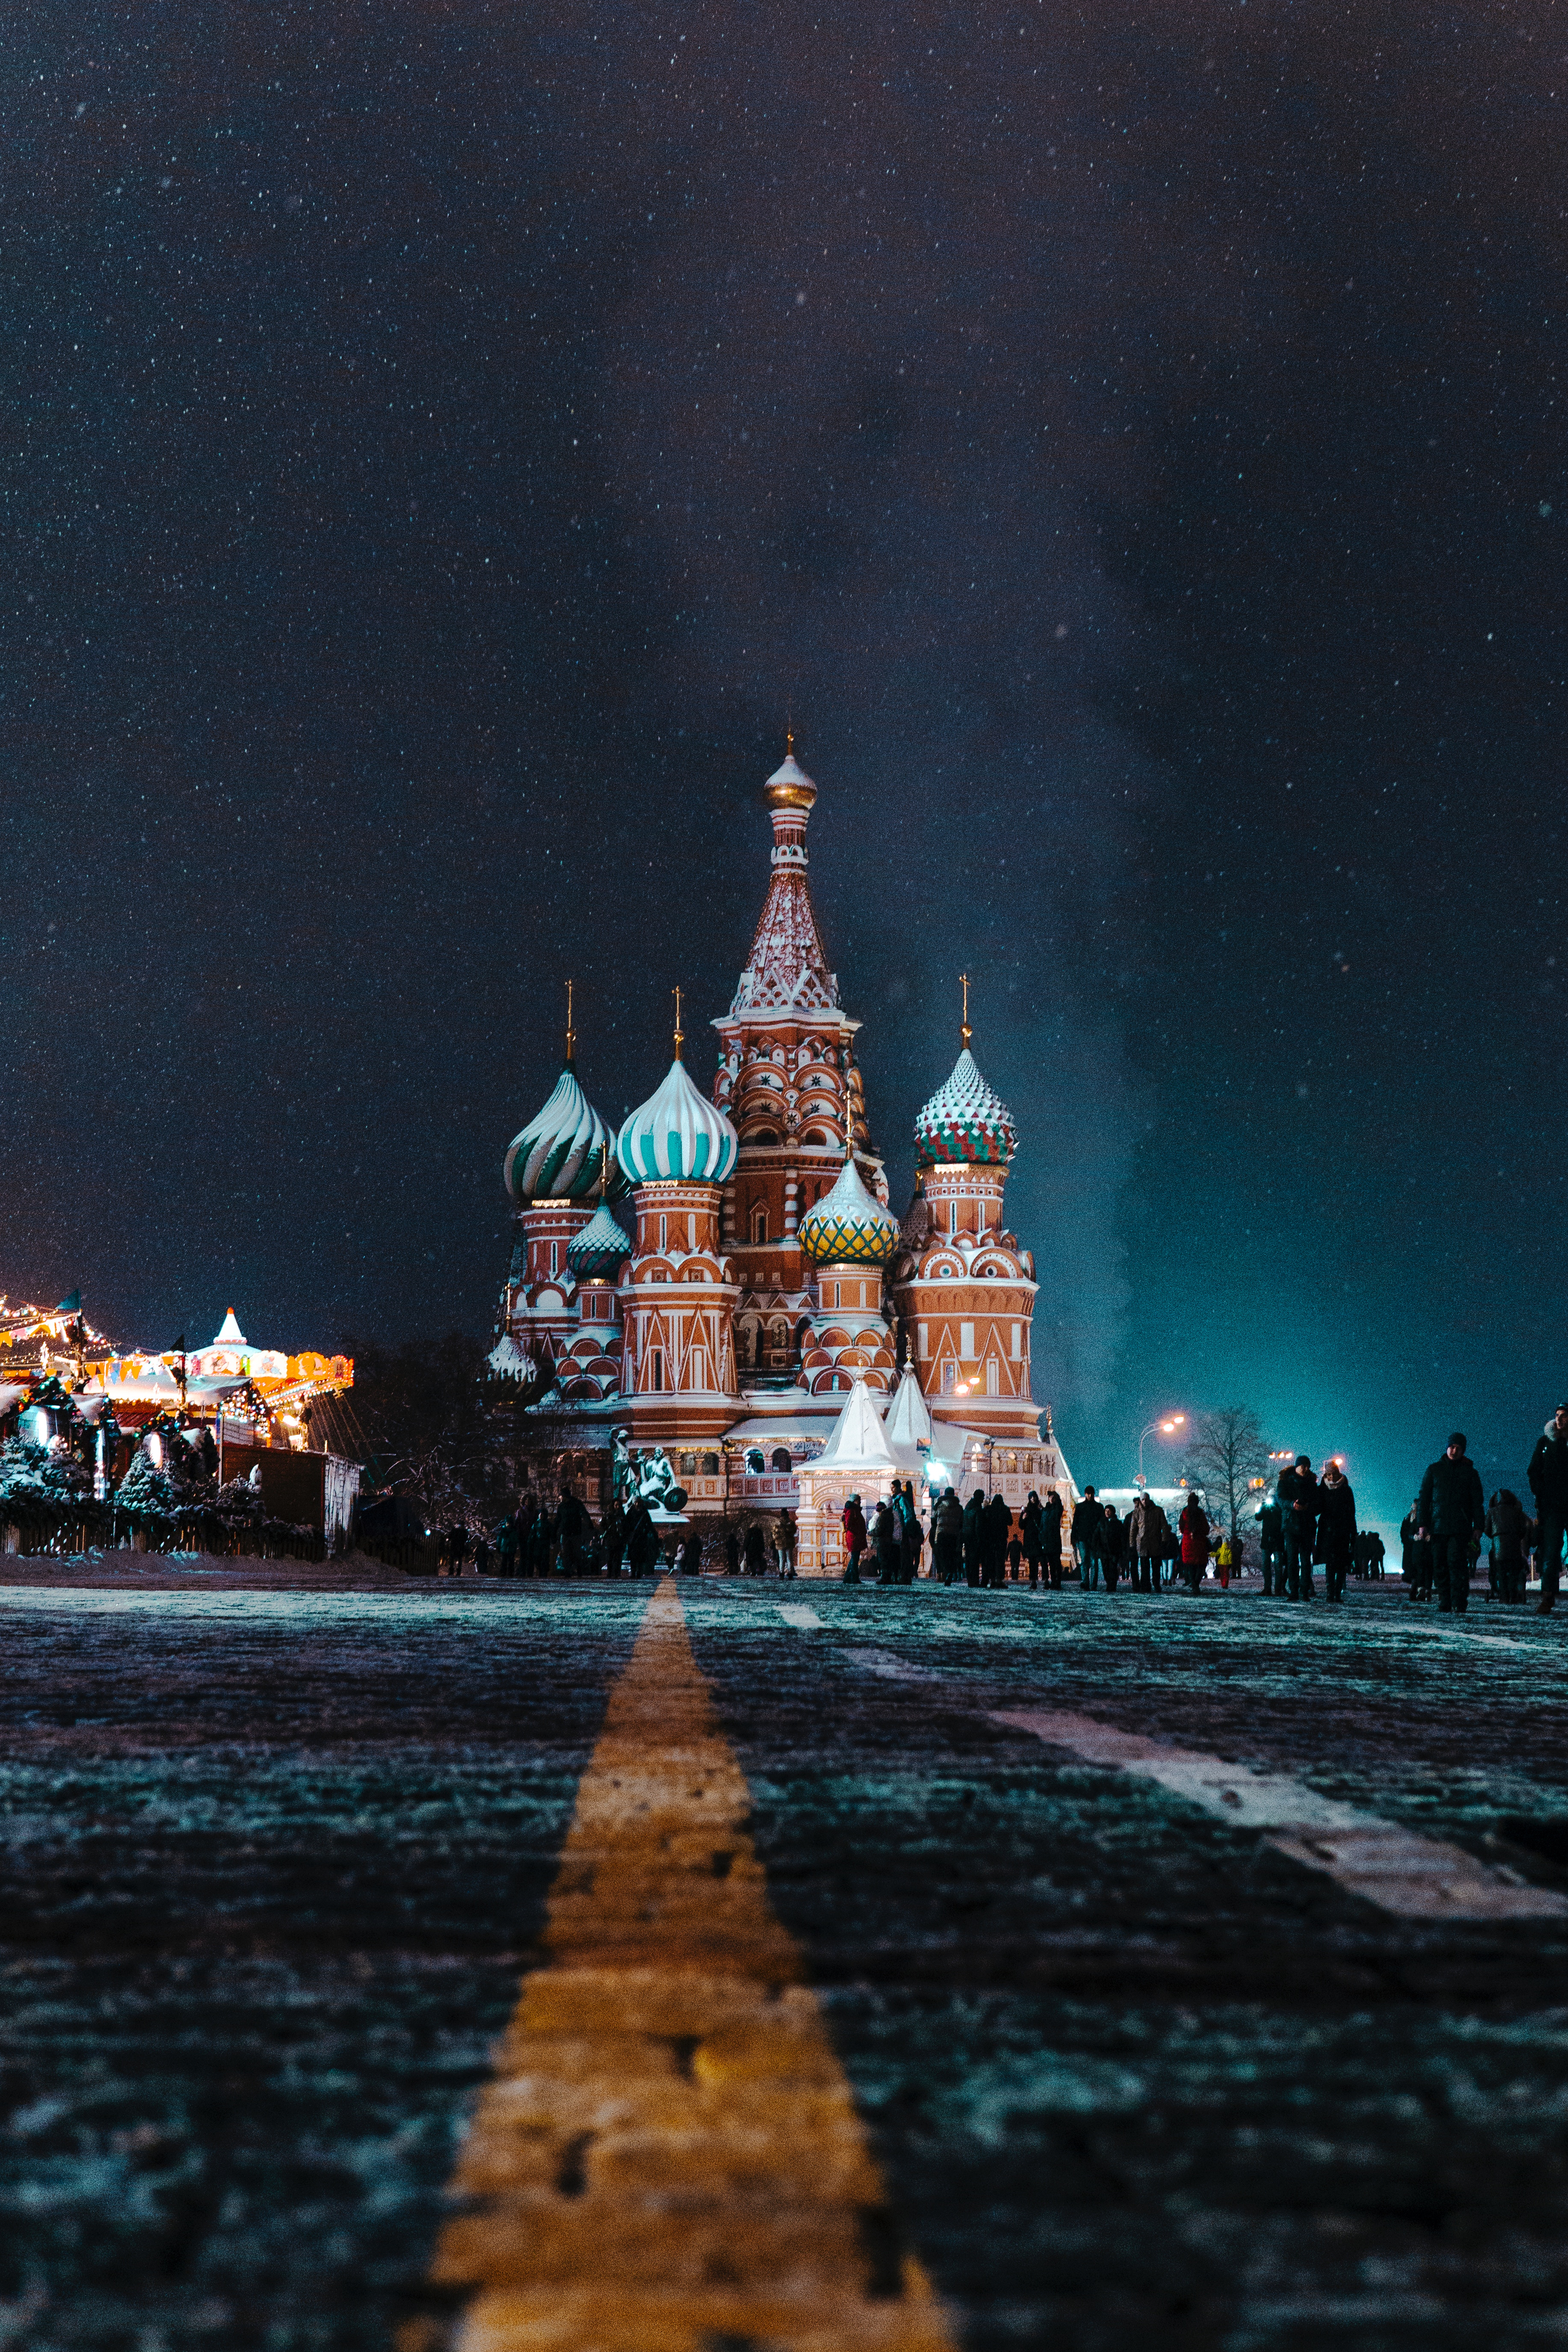 Beautiful Girl Hd Wallpaper Image Mastercard And Visa In Russia Da Or Nyet Paymentsjournal